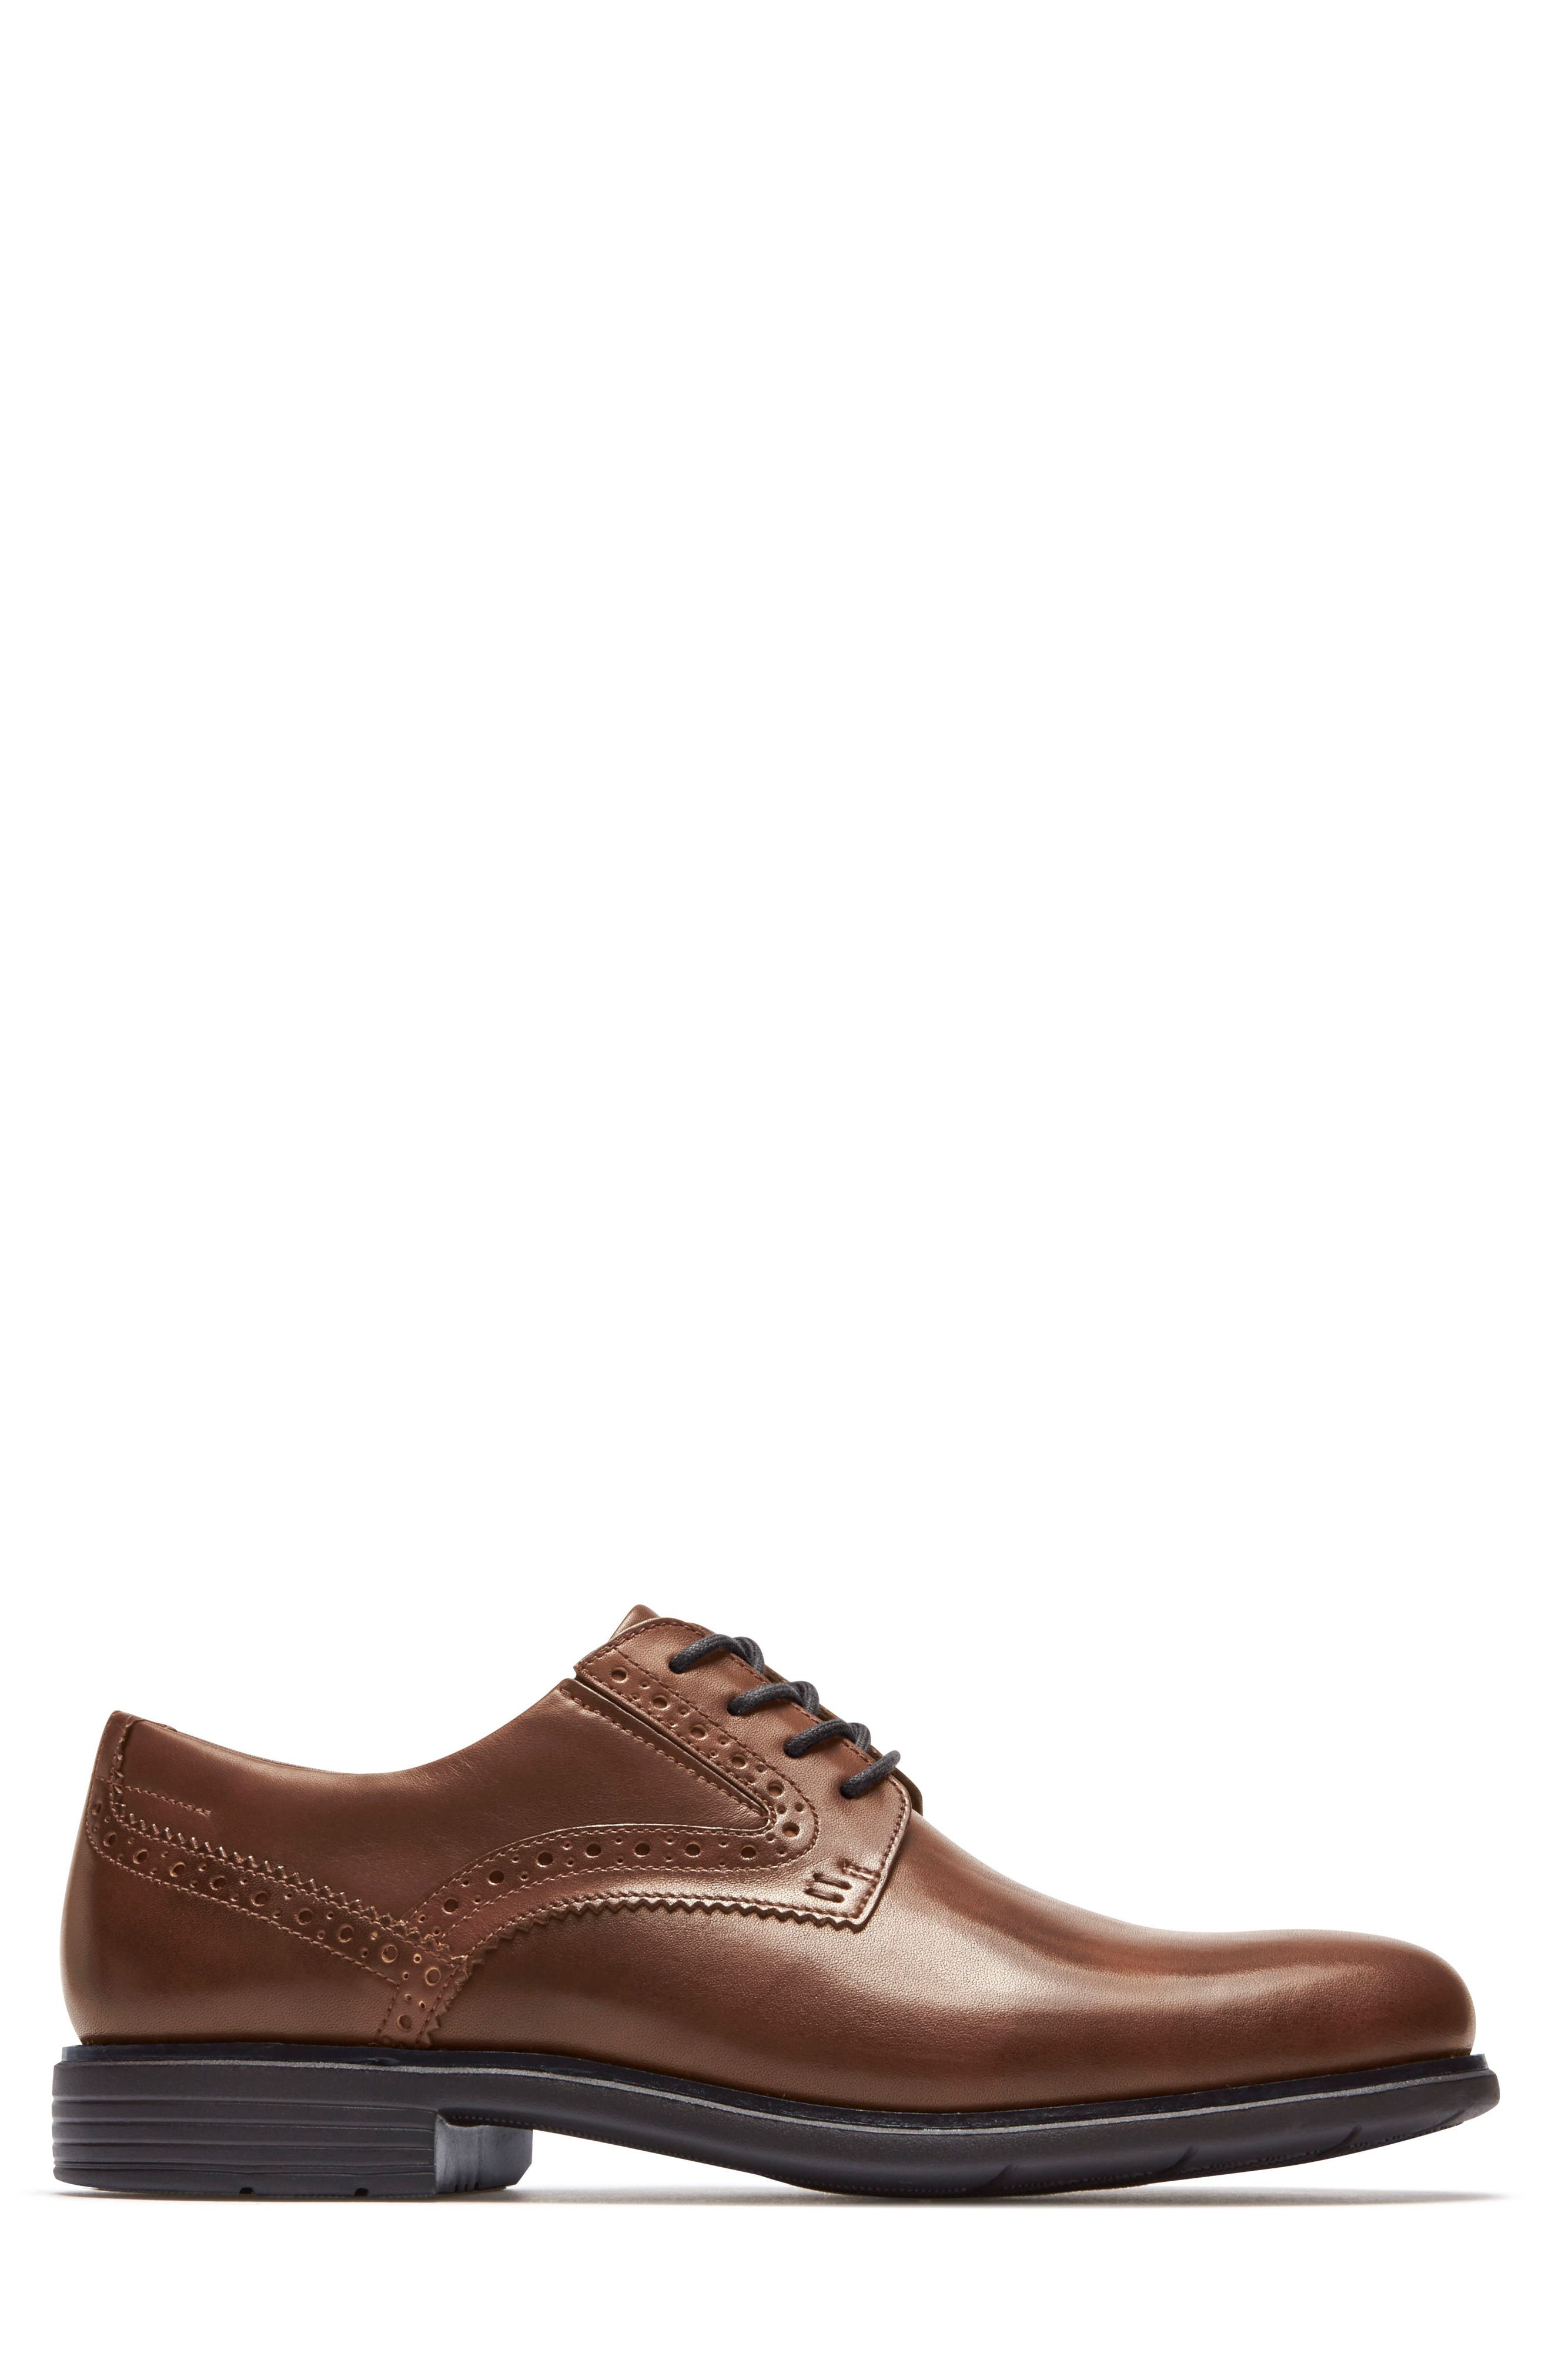 Total Motion Classic Plain Toe Derby,                             Alternate thumbnail 3, color,                             NEW BROWN LEATHER